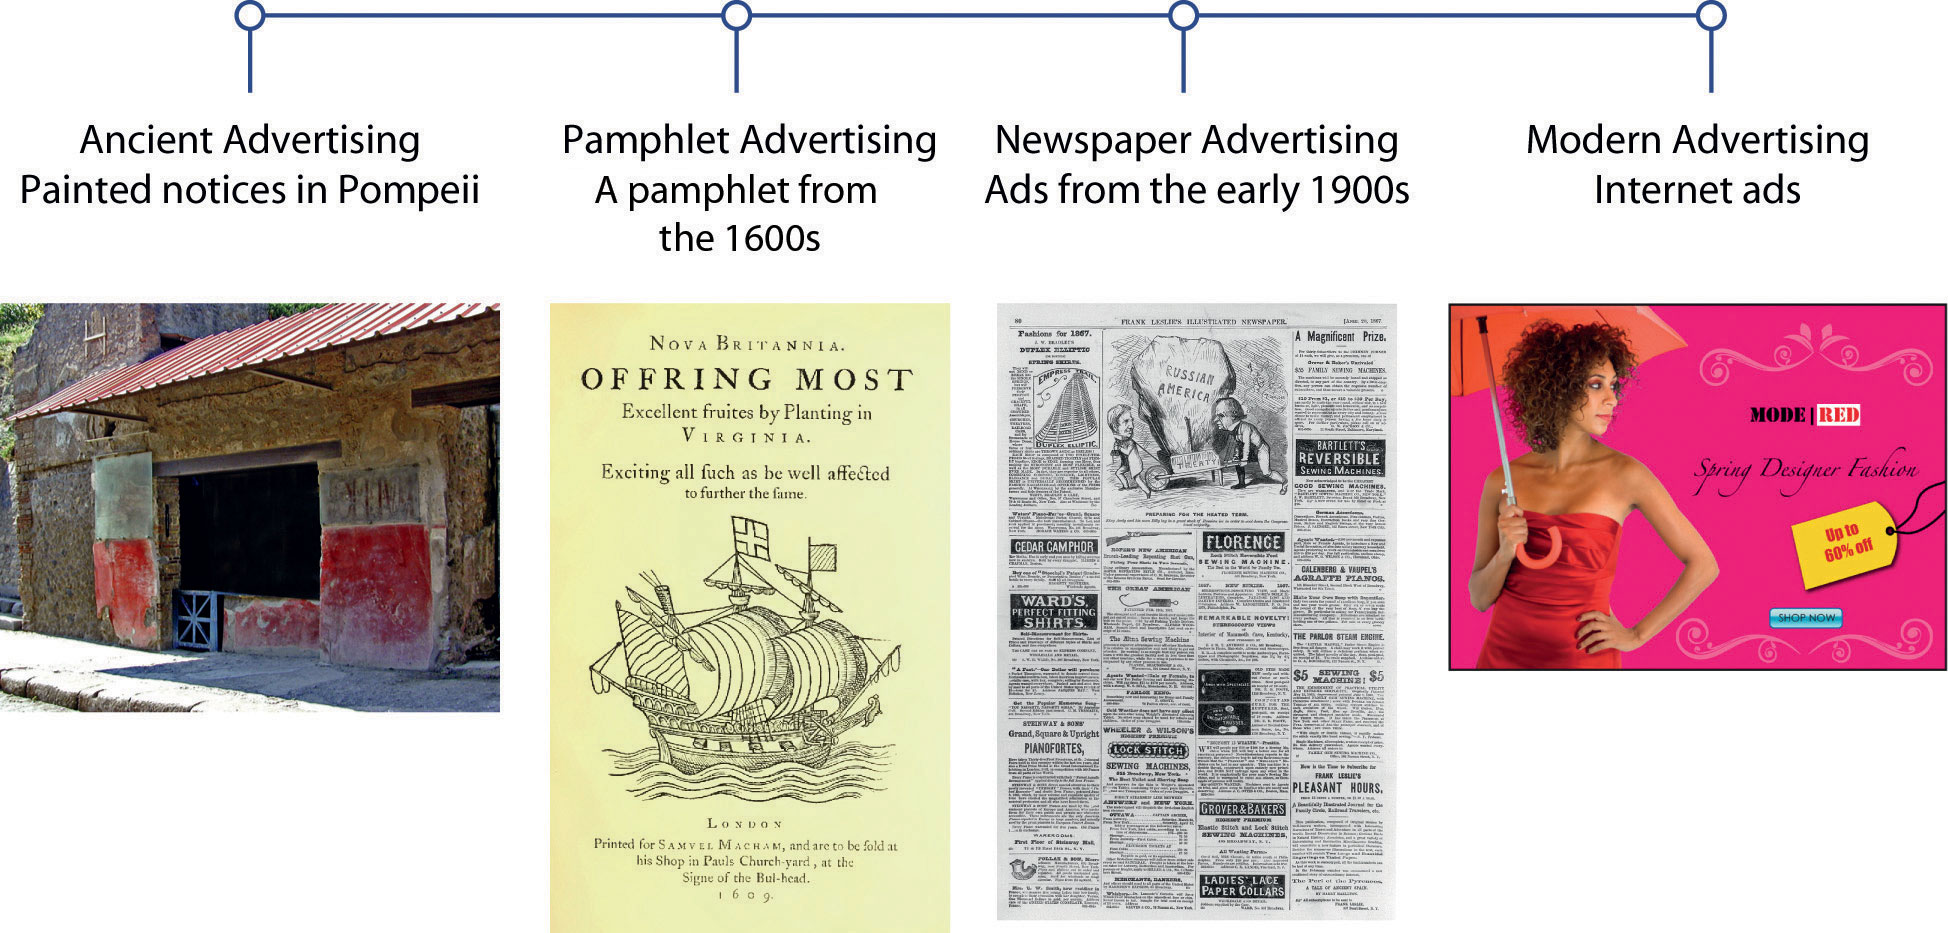 Lesson 4 Case Study of Social Change: Mass Advertising and